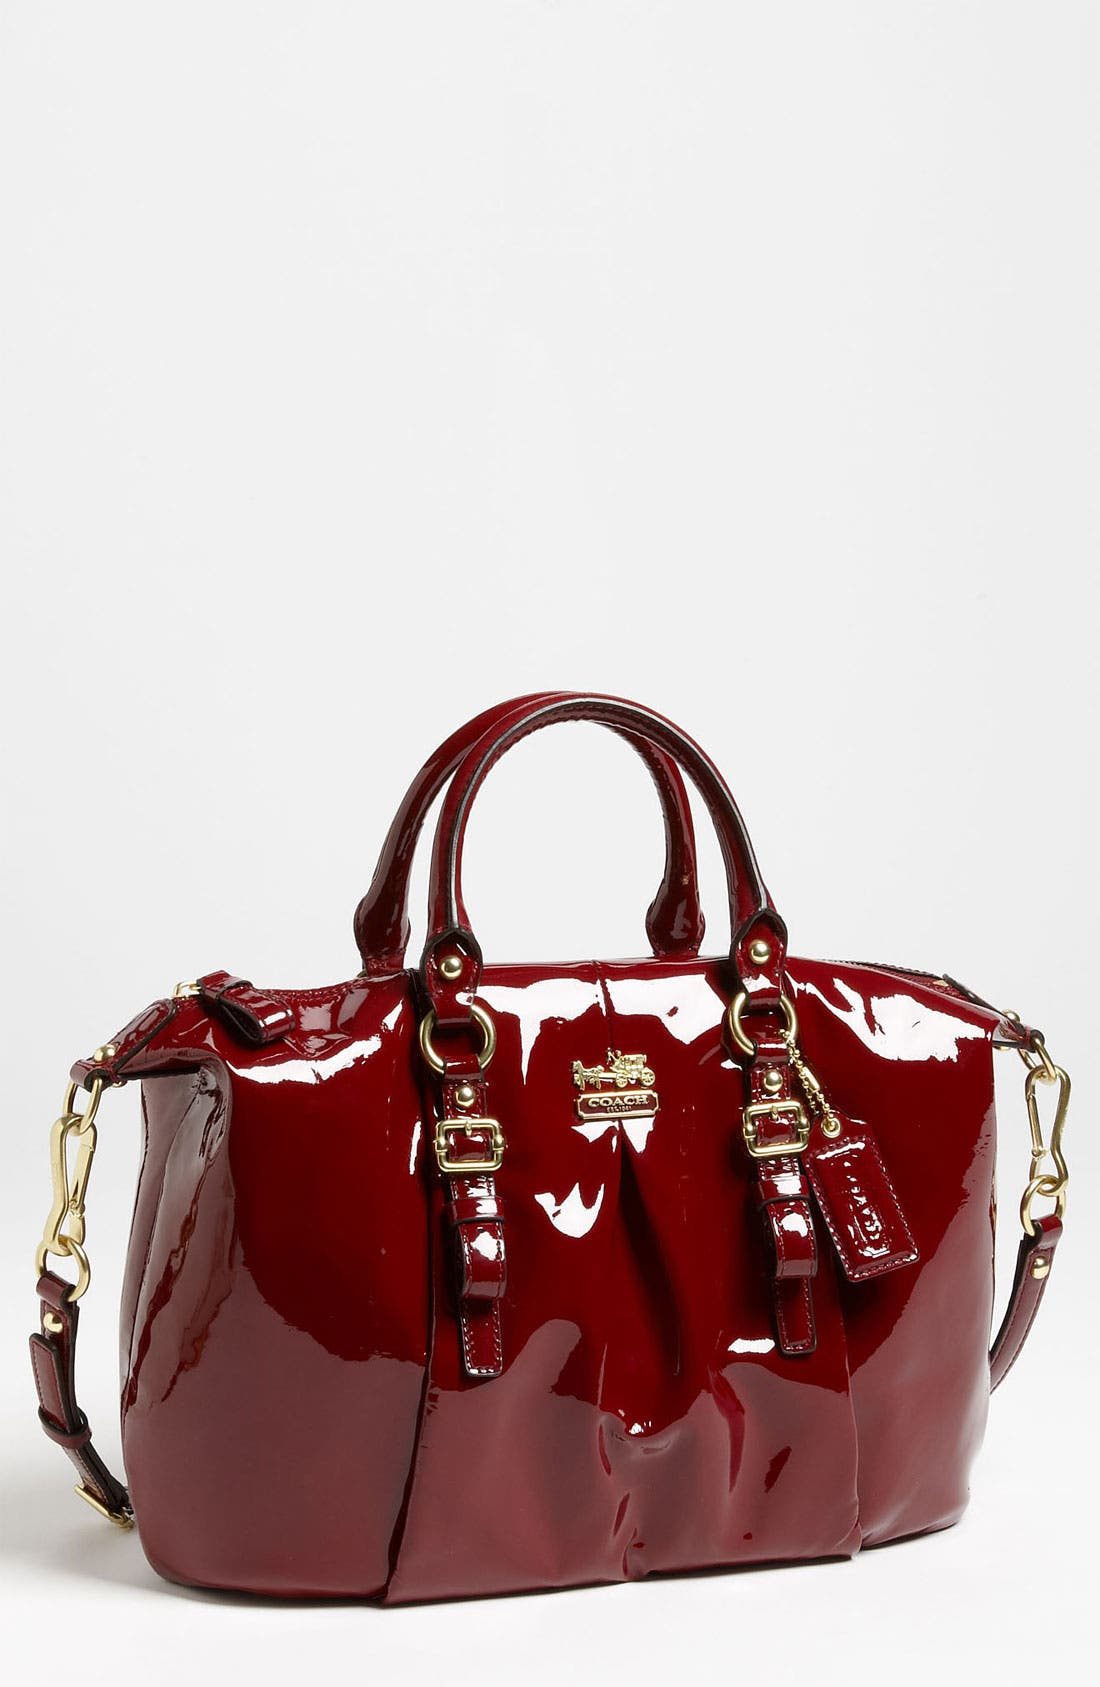 Alternate Image 1 Selected - COACH 'New Madison - Juliette' Patent Leather Satchel